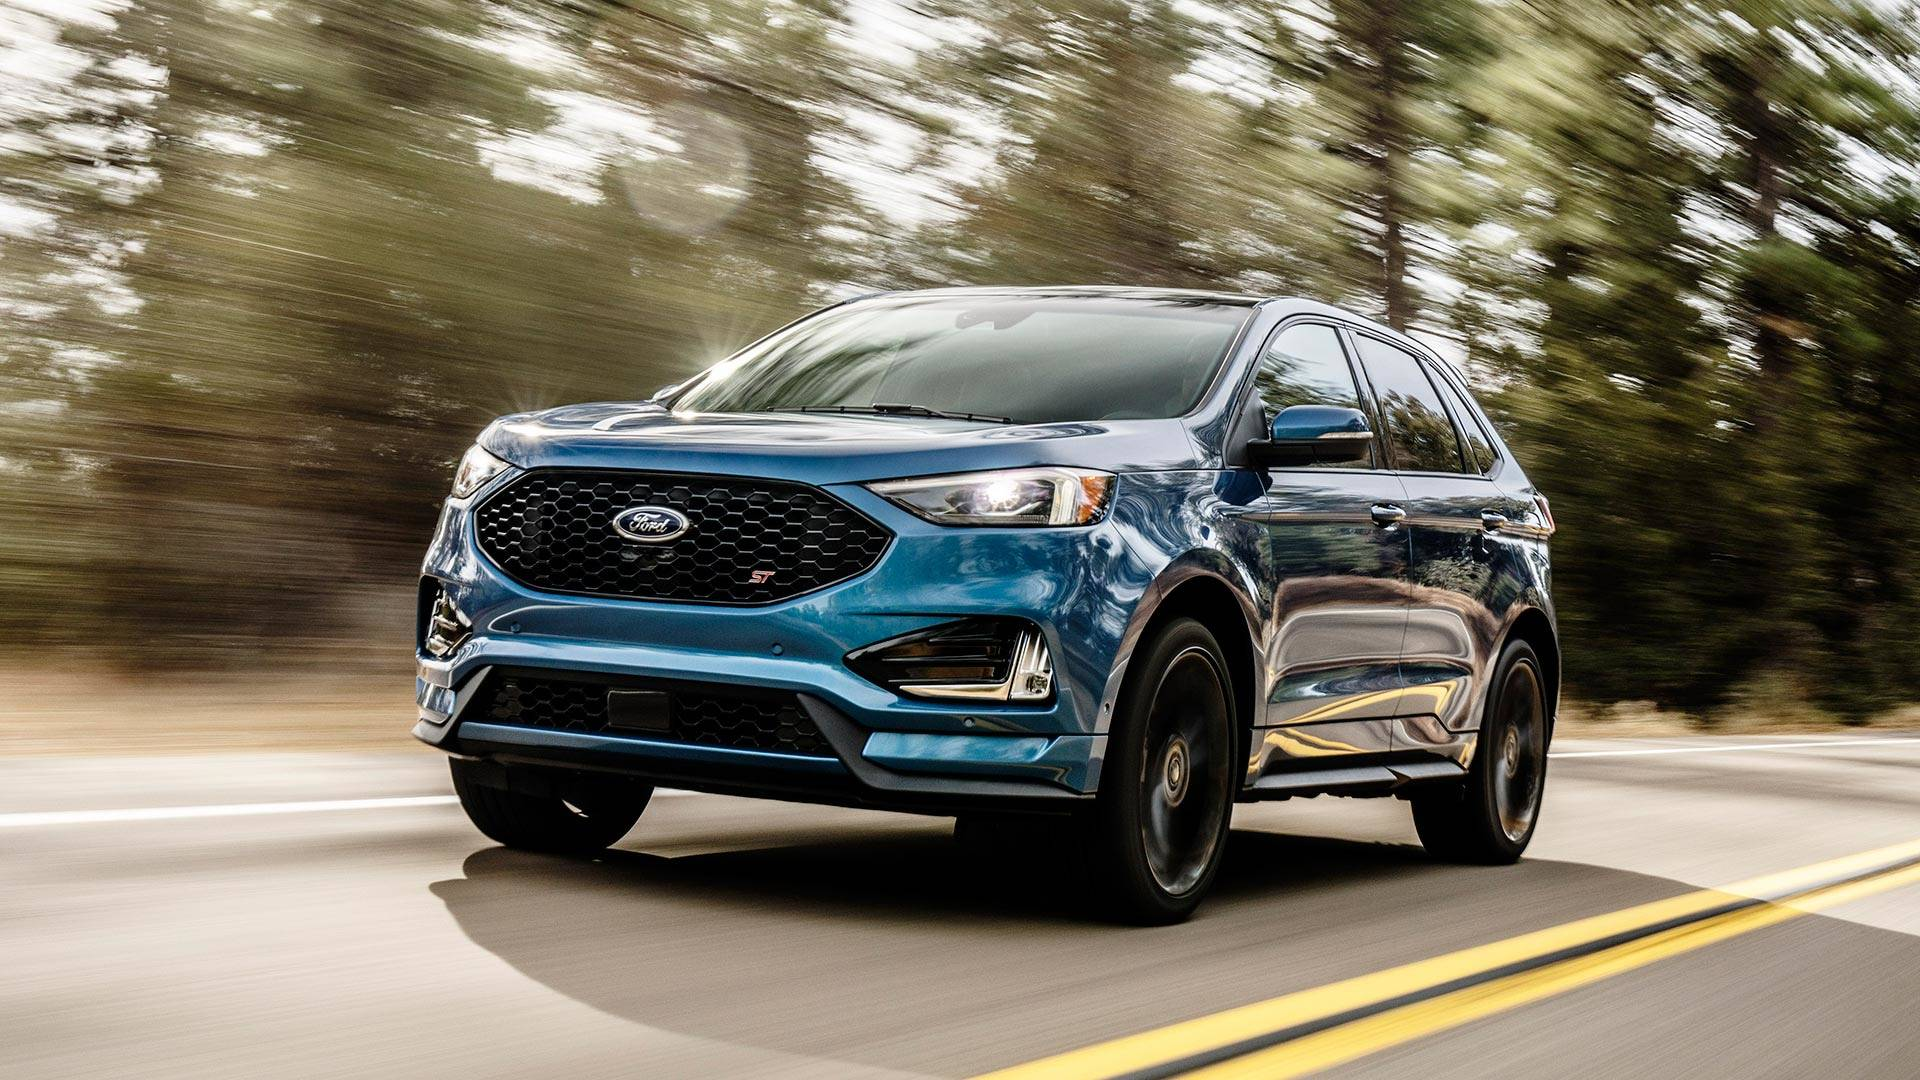 2019 ford edge st gets even edgier with sport mode rev matching